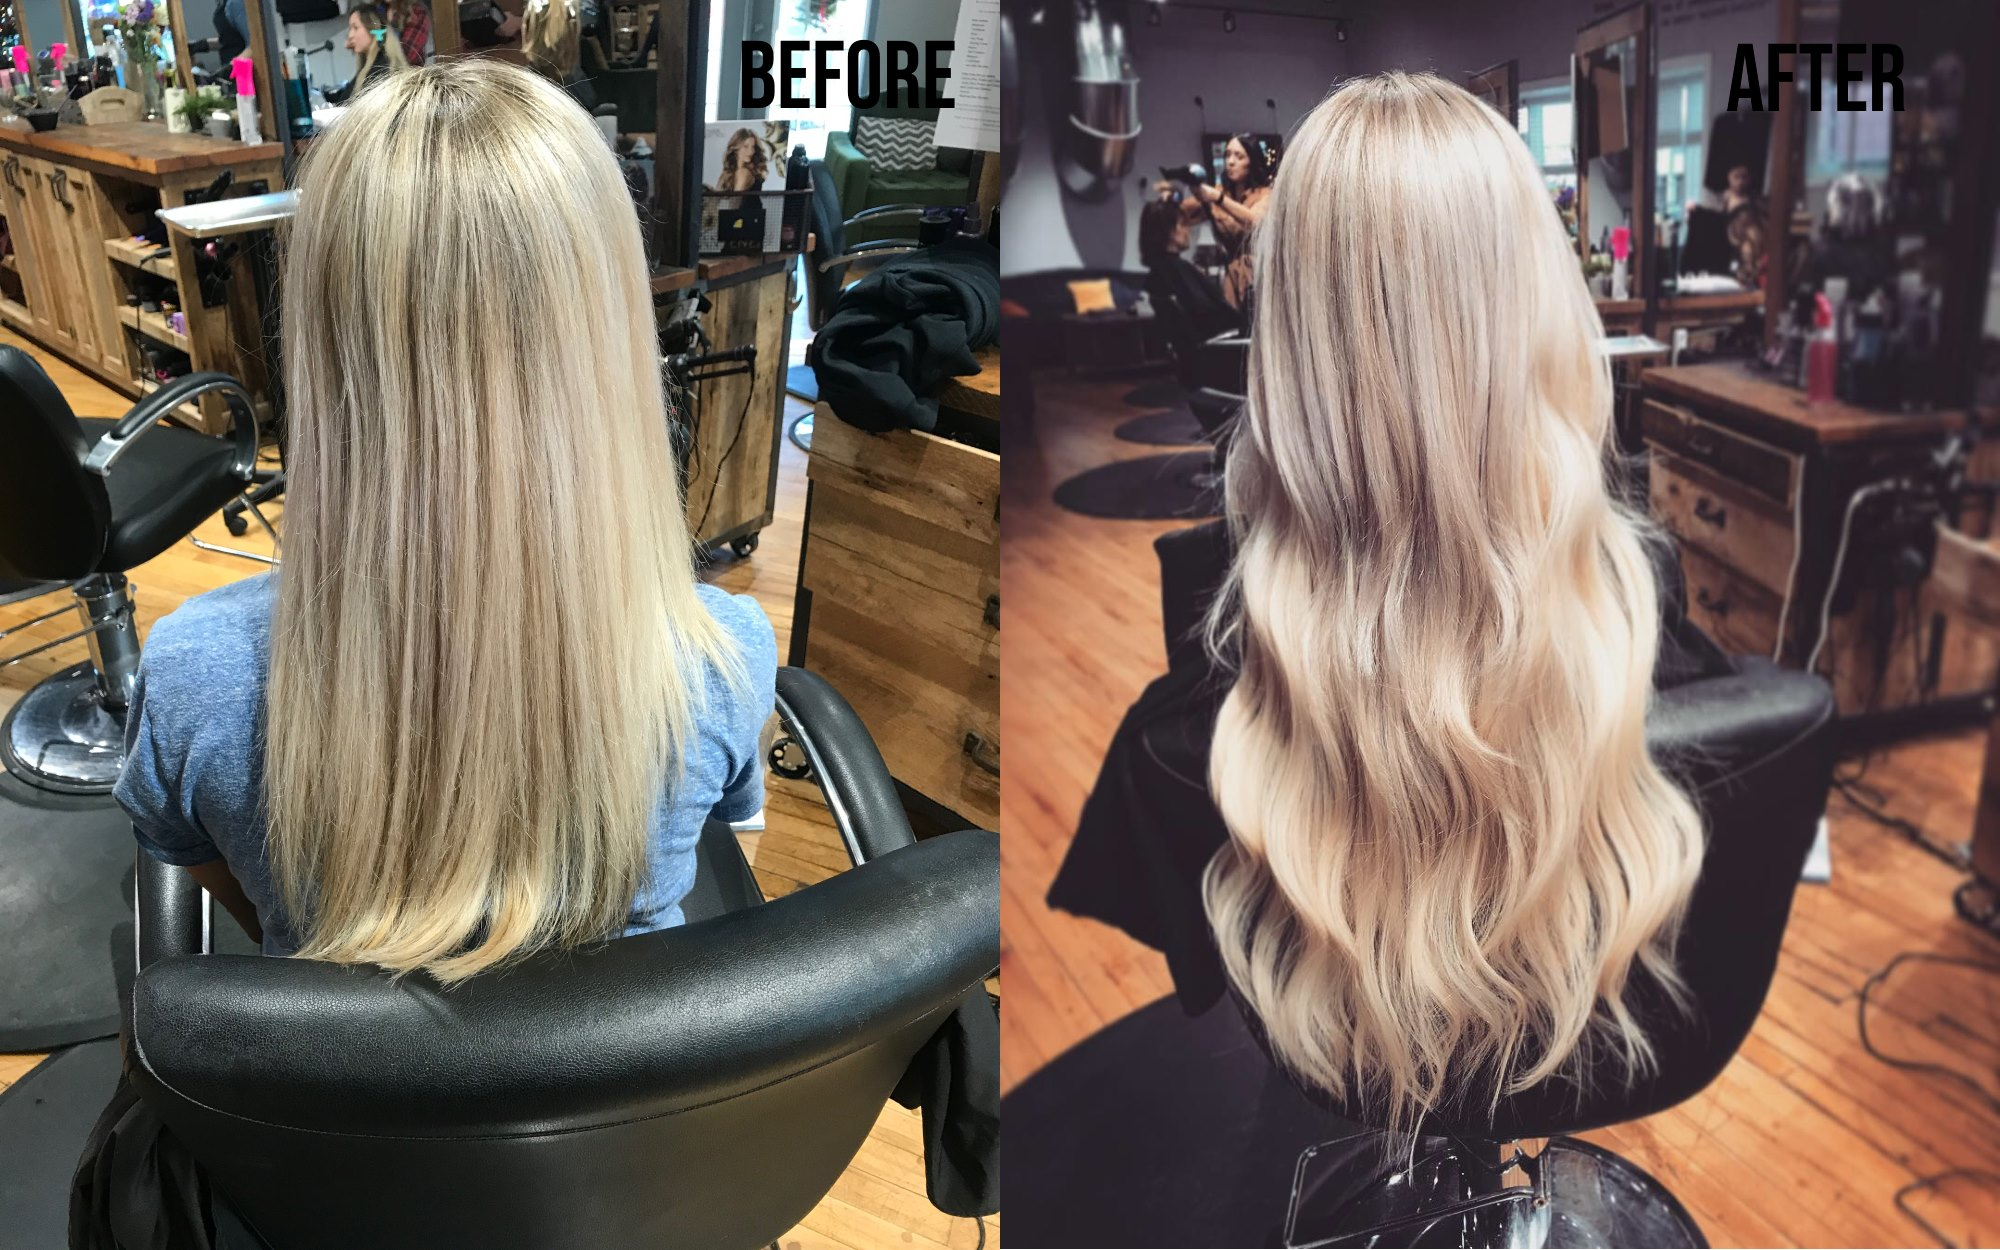 Top_Hair_Extension_Salon_St_Louis_MO_2.jpg